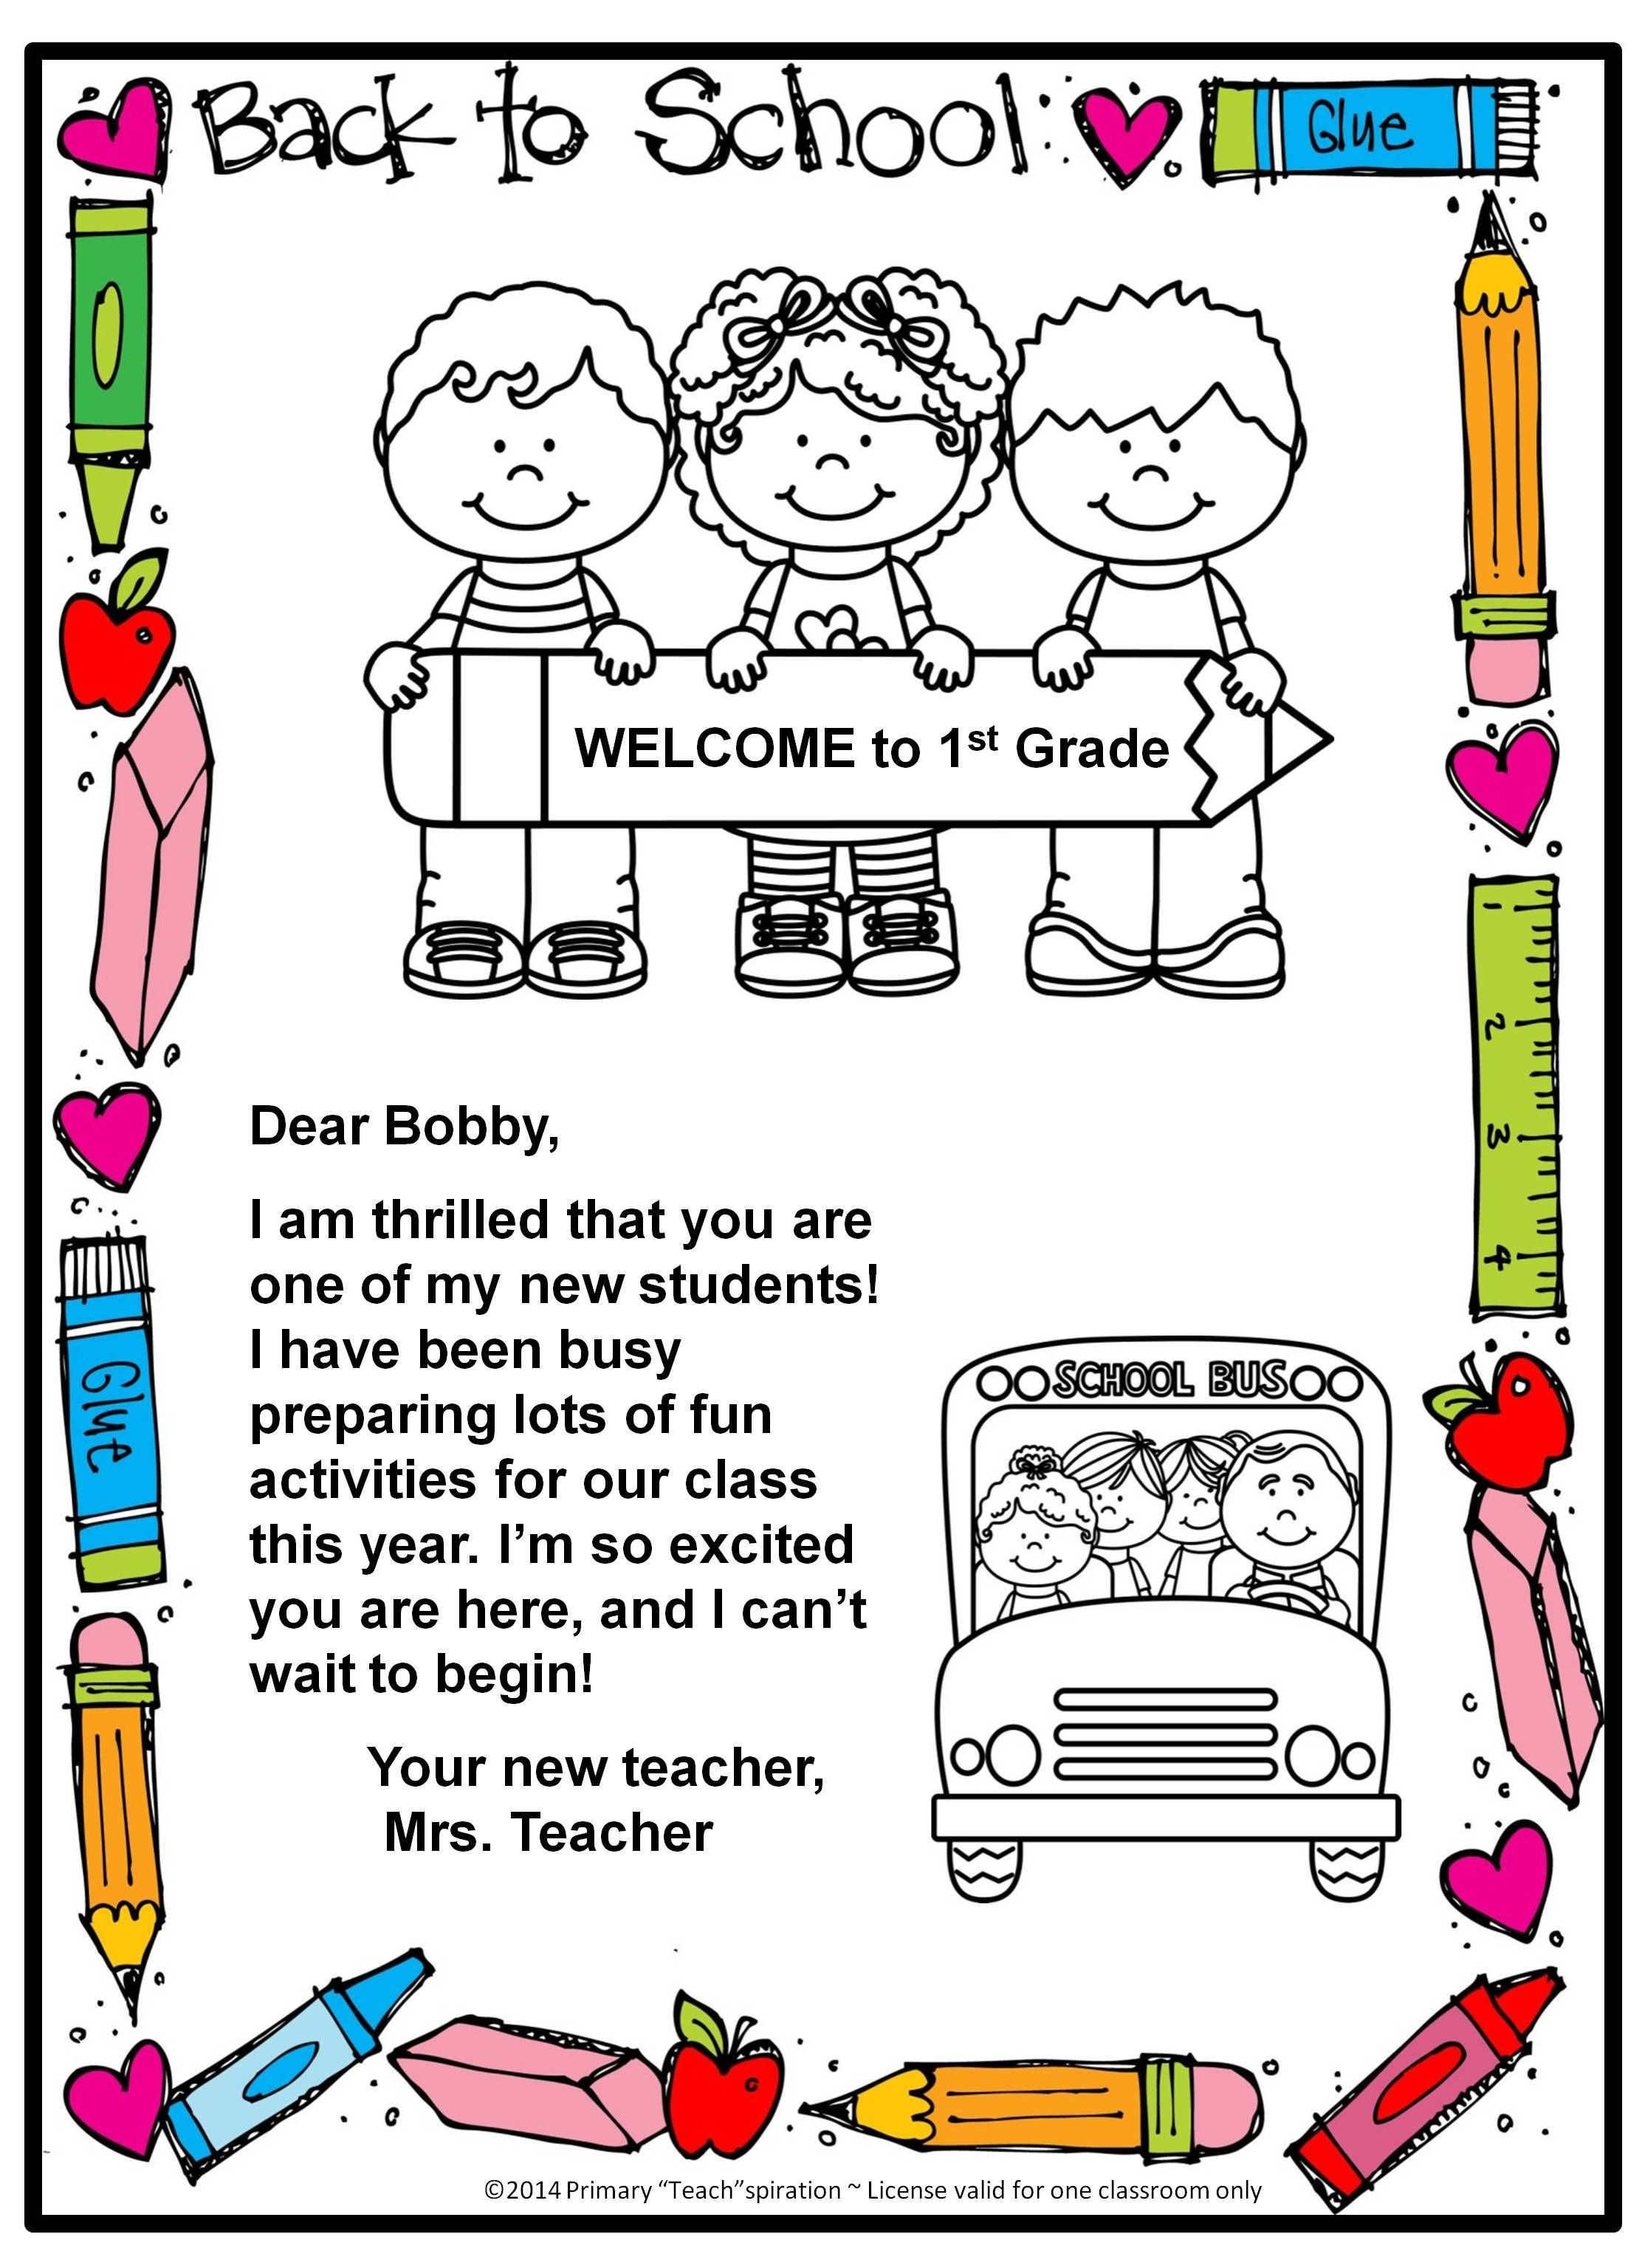 Back To School Welcome Letter And Postcard Editable